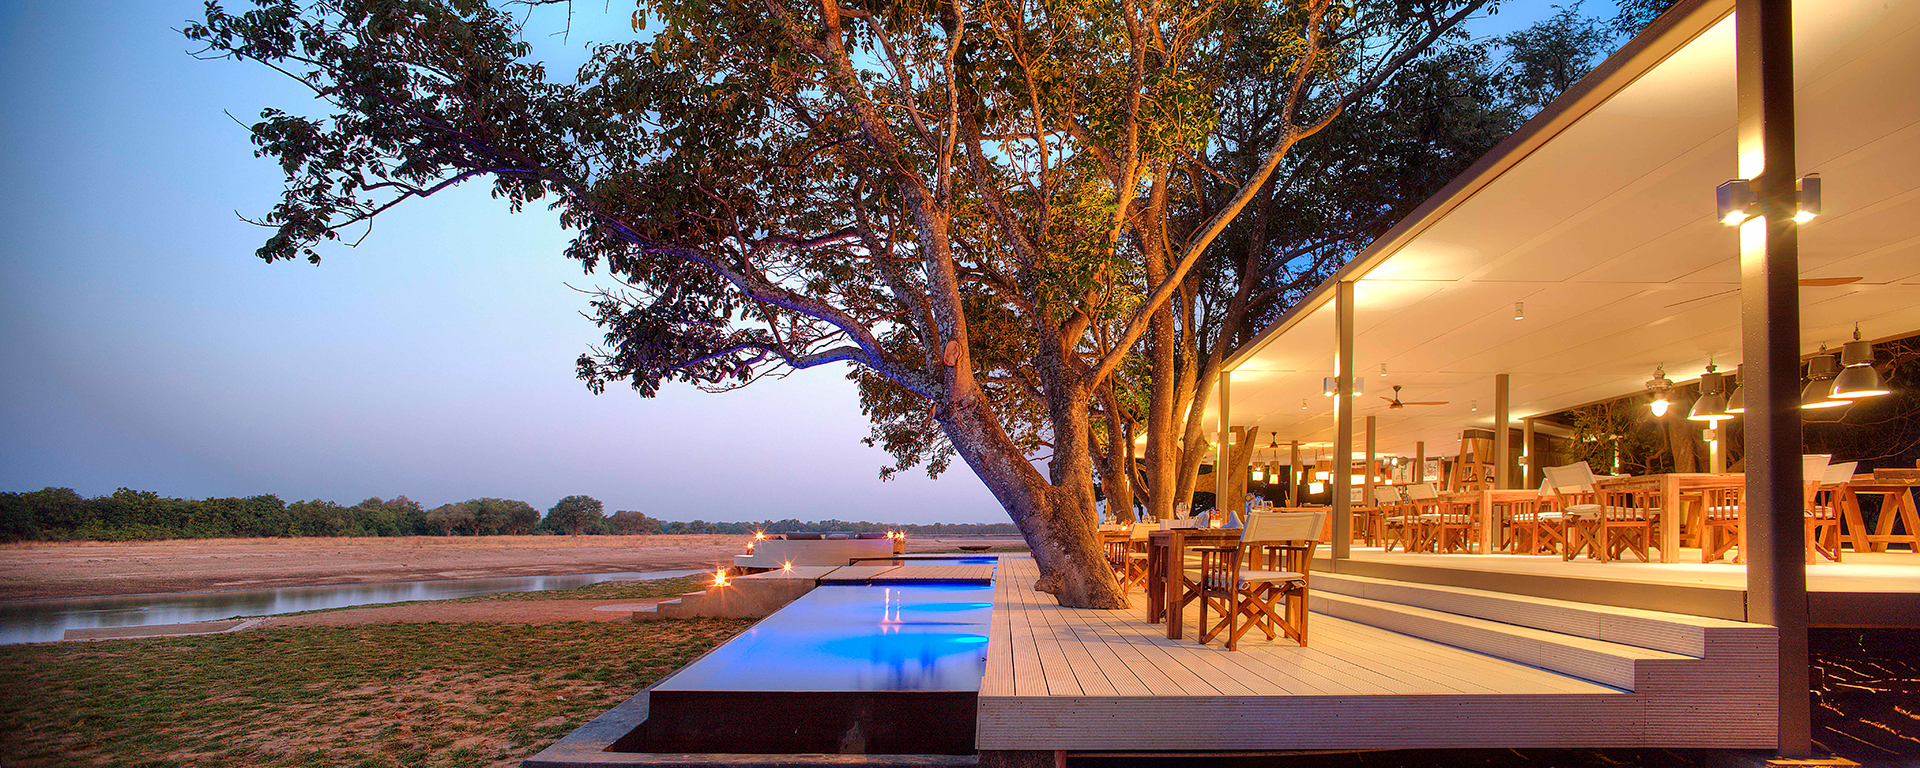 At Africa's premium lodges - like Chinzombo in Zambia - the dining areas are as spectacular as the menu.